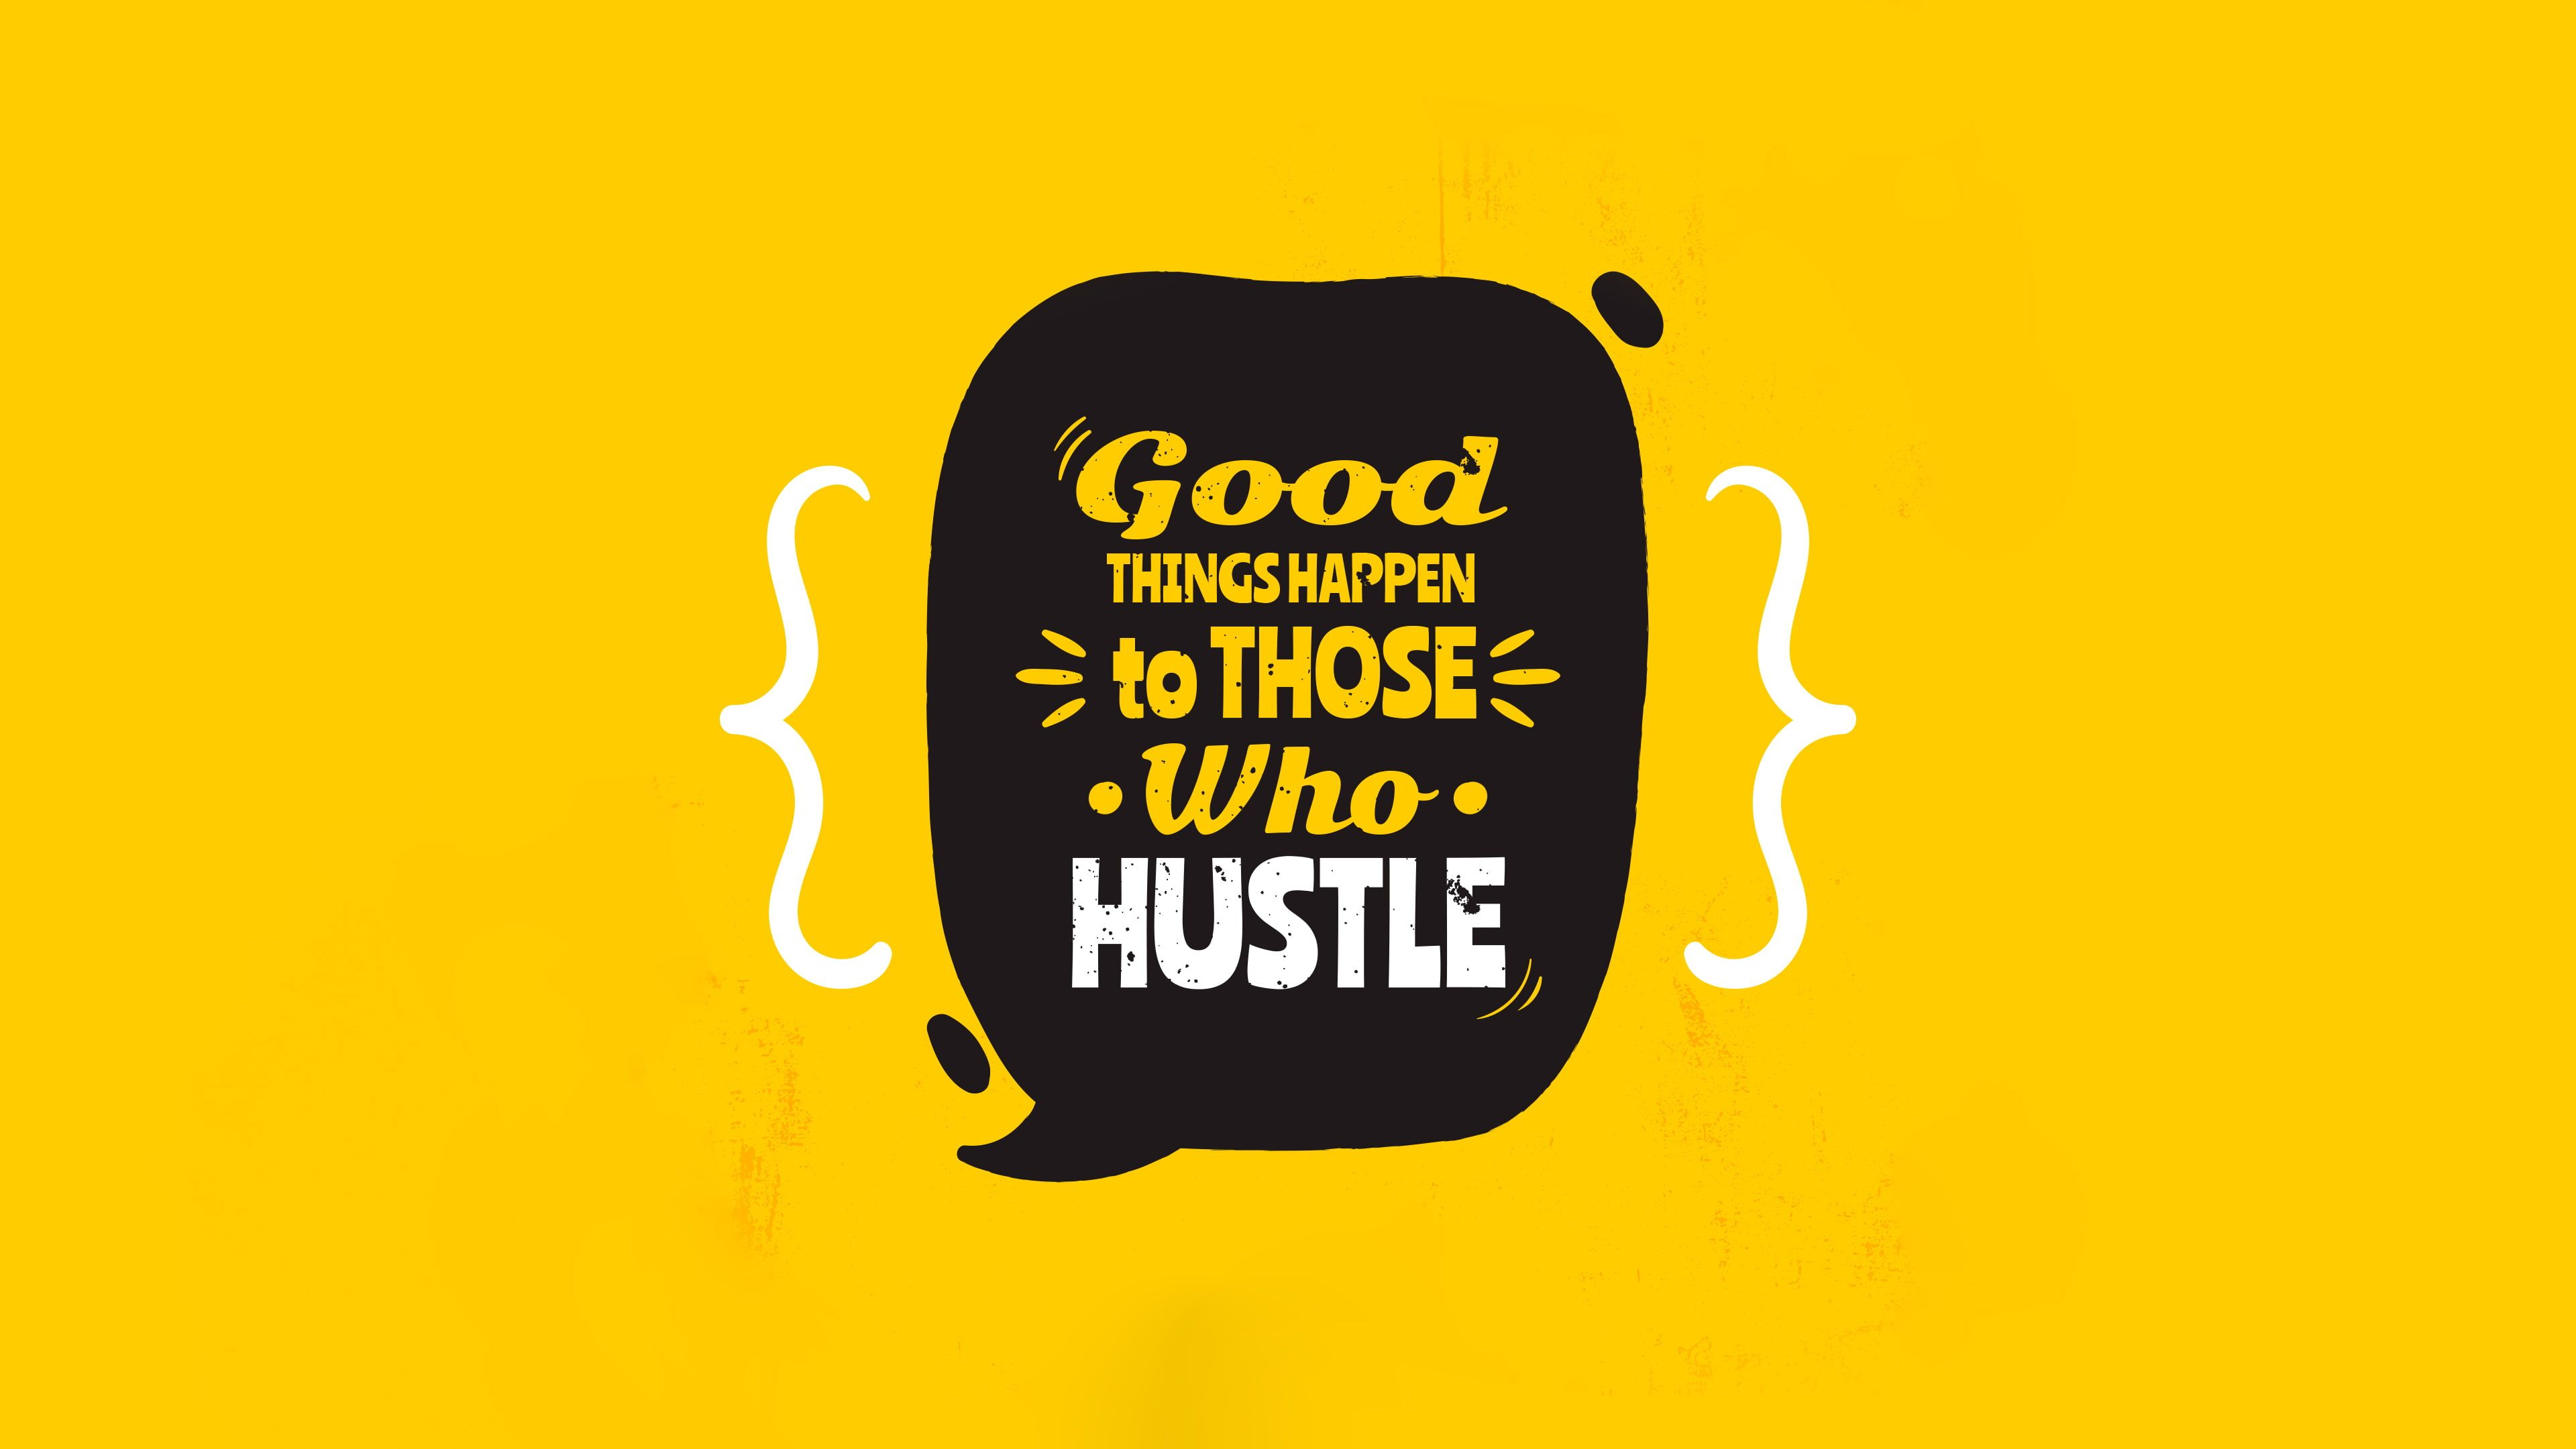 Quote Text Typography Yellow Background 4k Wallpaper Hdwallpaper Desktop Wallpaper Quotes Desktop Wallpaper Quotes Iphone Wallpaper Words